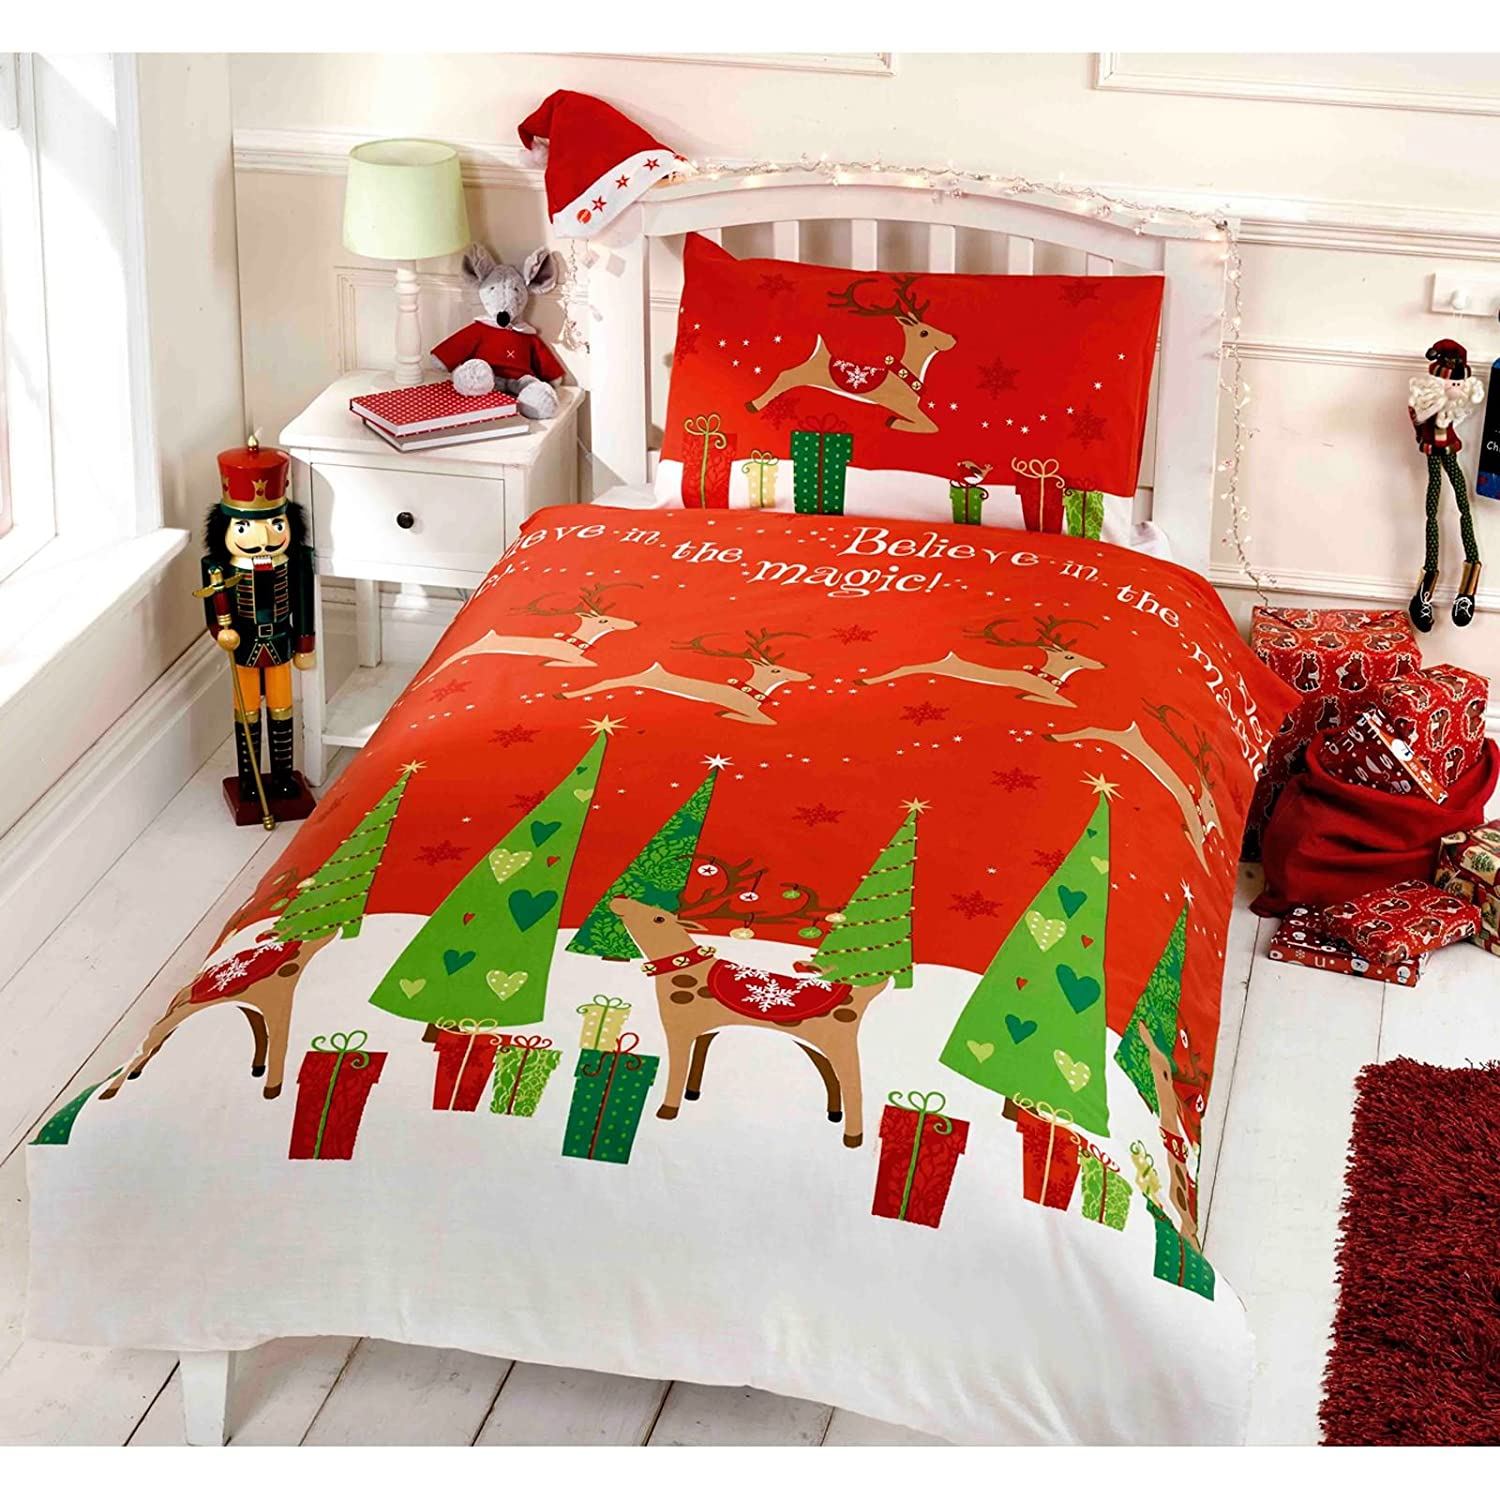 Believe Christmas Double Duvet /US Full Cover and Pillowcase Set